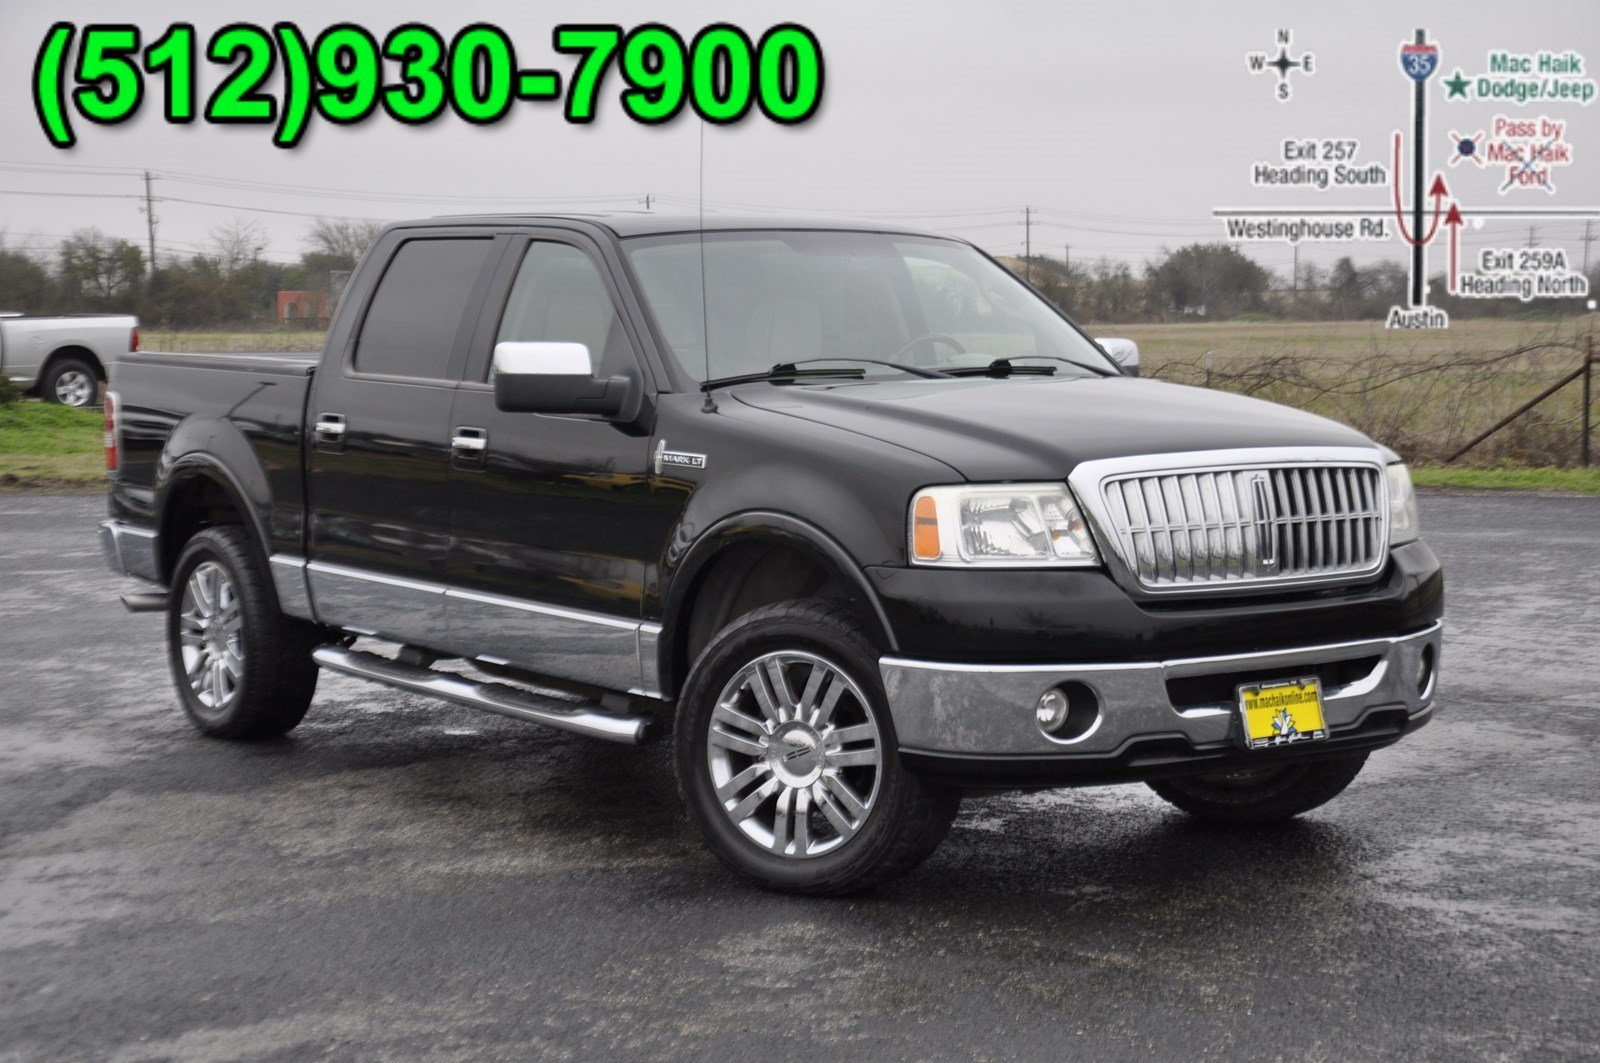 2007 Lincoln Mark Lt Crew Cab Pickup For Sale In Austin Tx 708847a